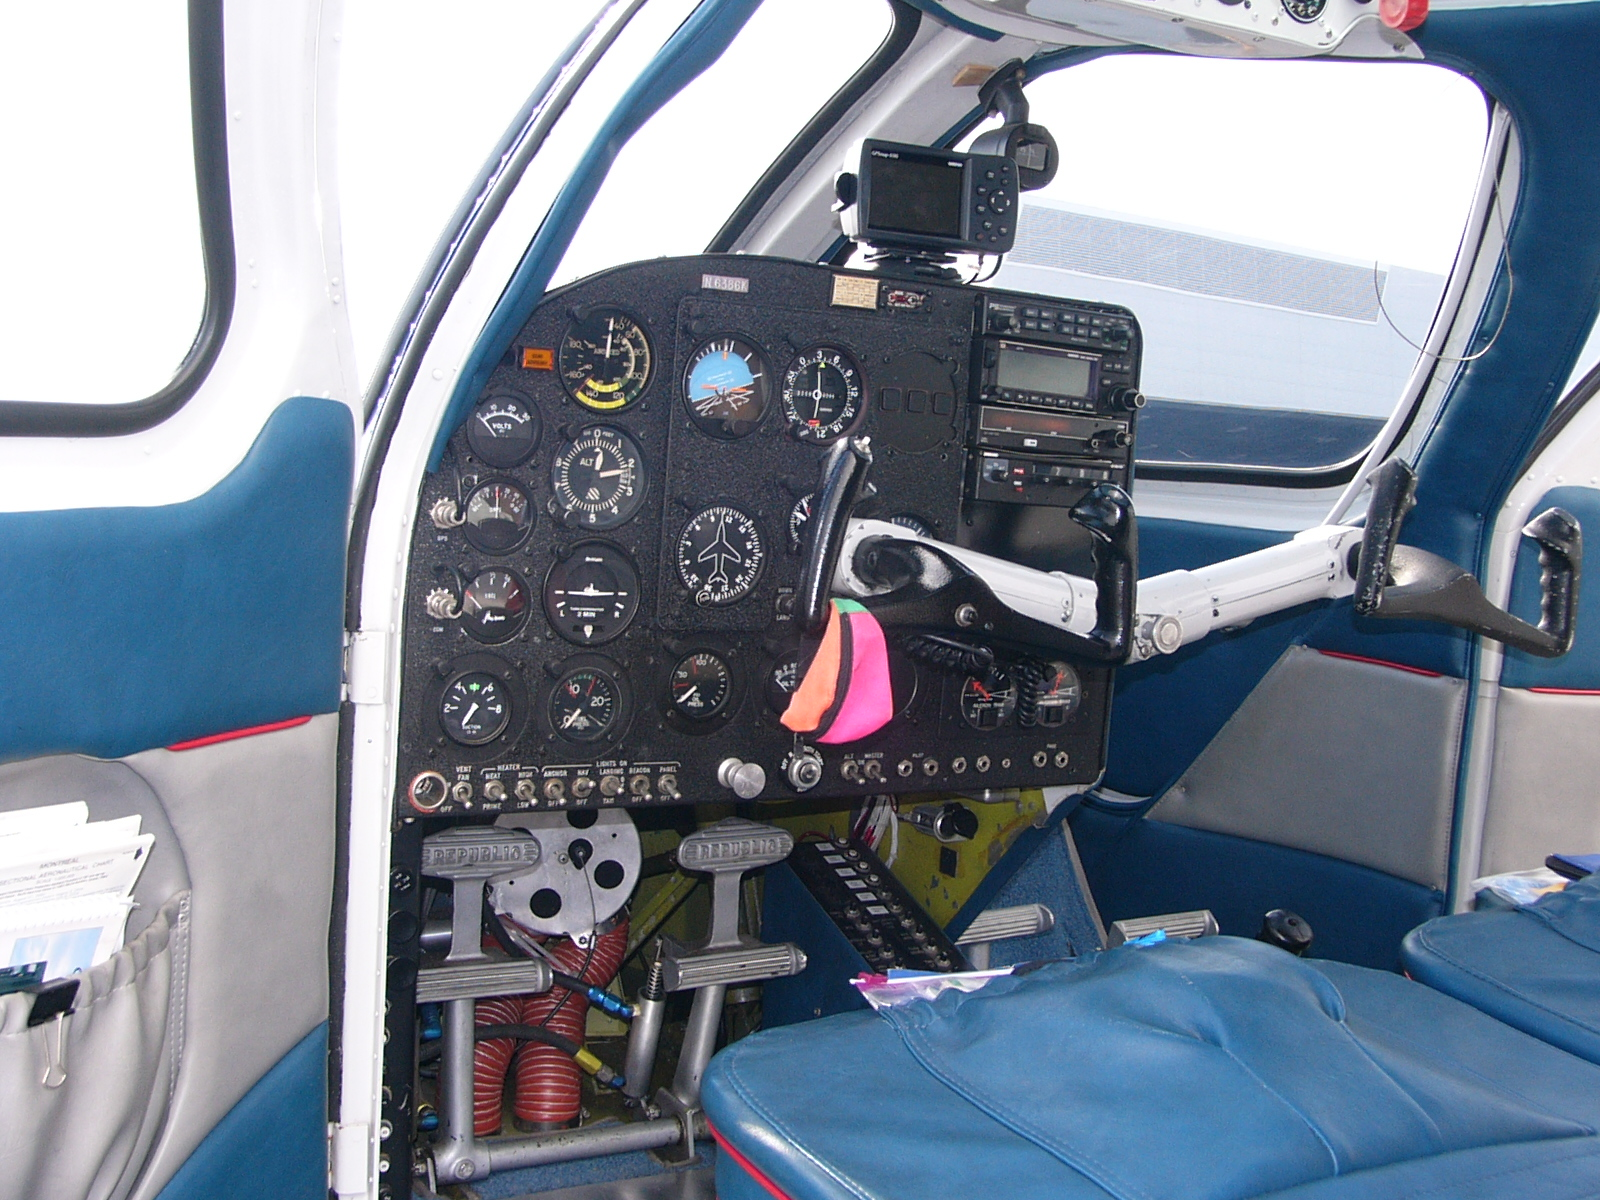 https://upload.wikimedia.org/wikipedia/commons/b/b8/Seabee_Instrument_panel_02.JPG